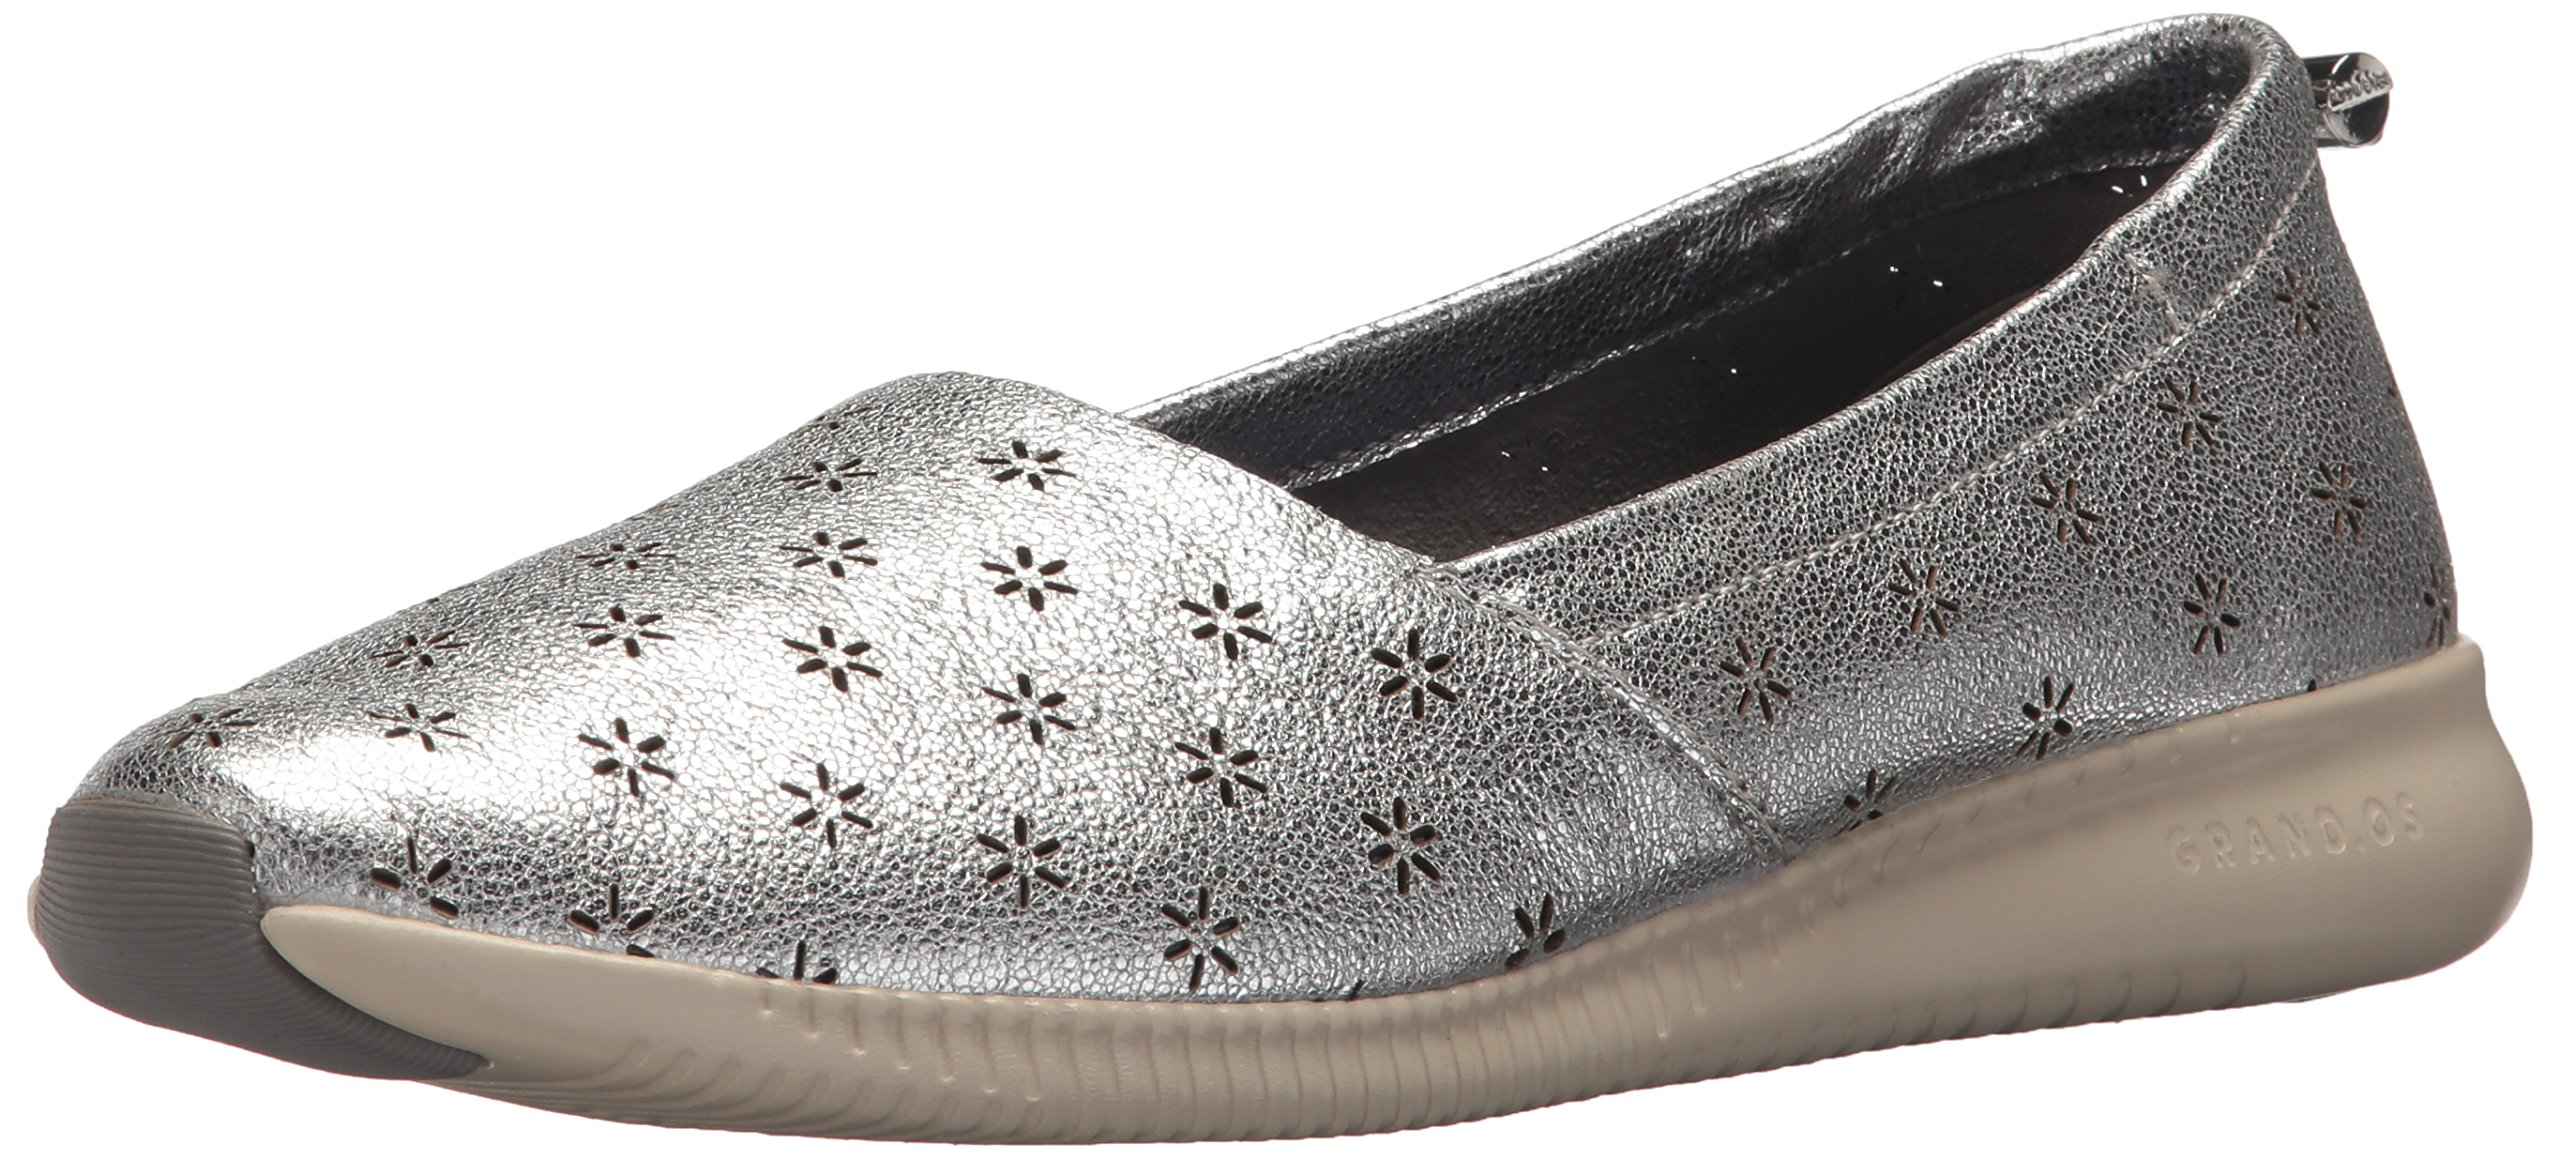 Cole Haan Women's Studiogrand Perf Slip On Loafer, Pewter Metallic Perforated Nubuck, 7.5 B US